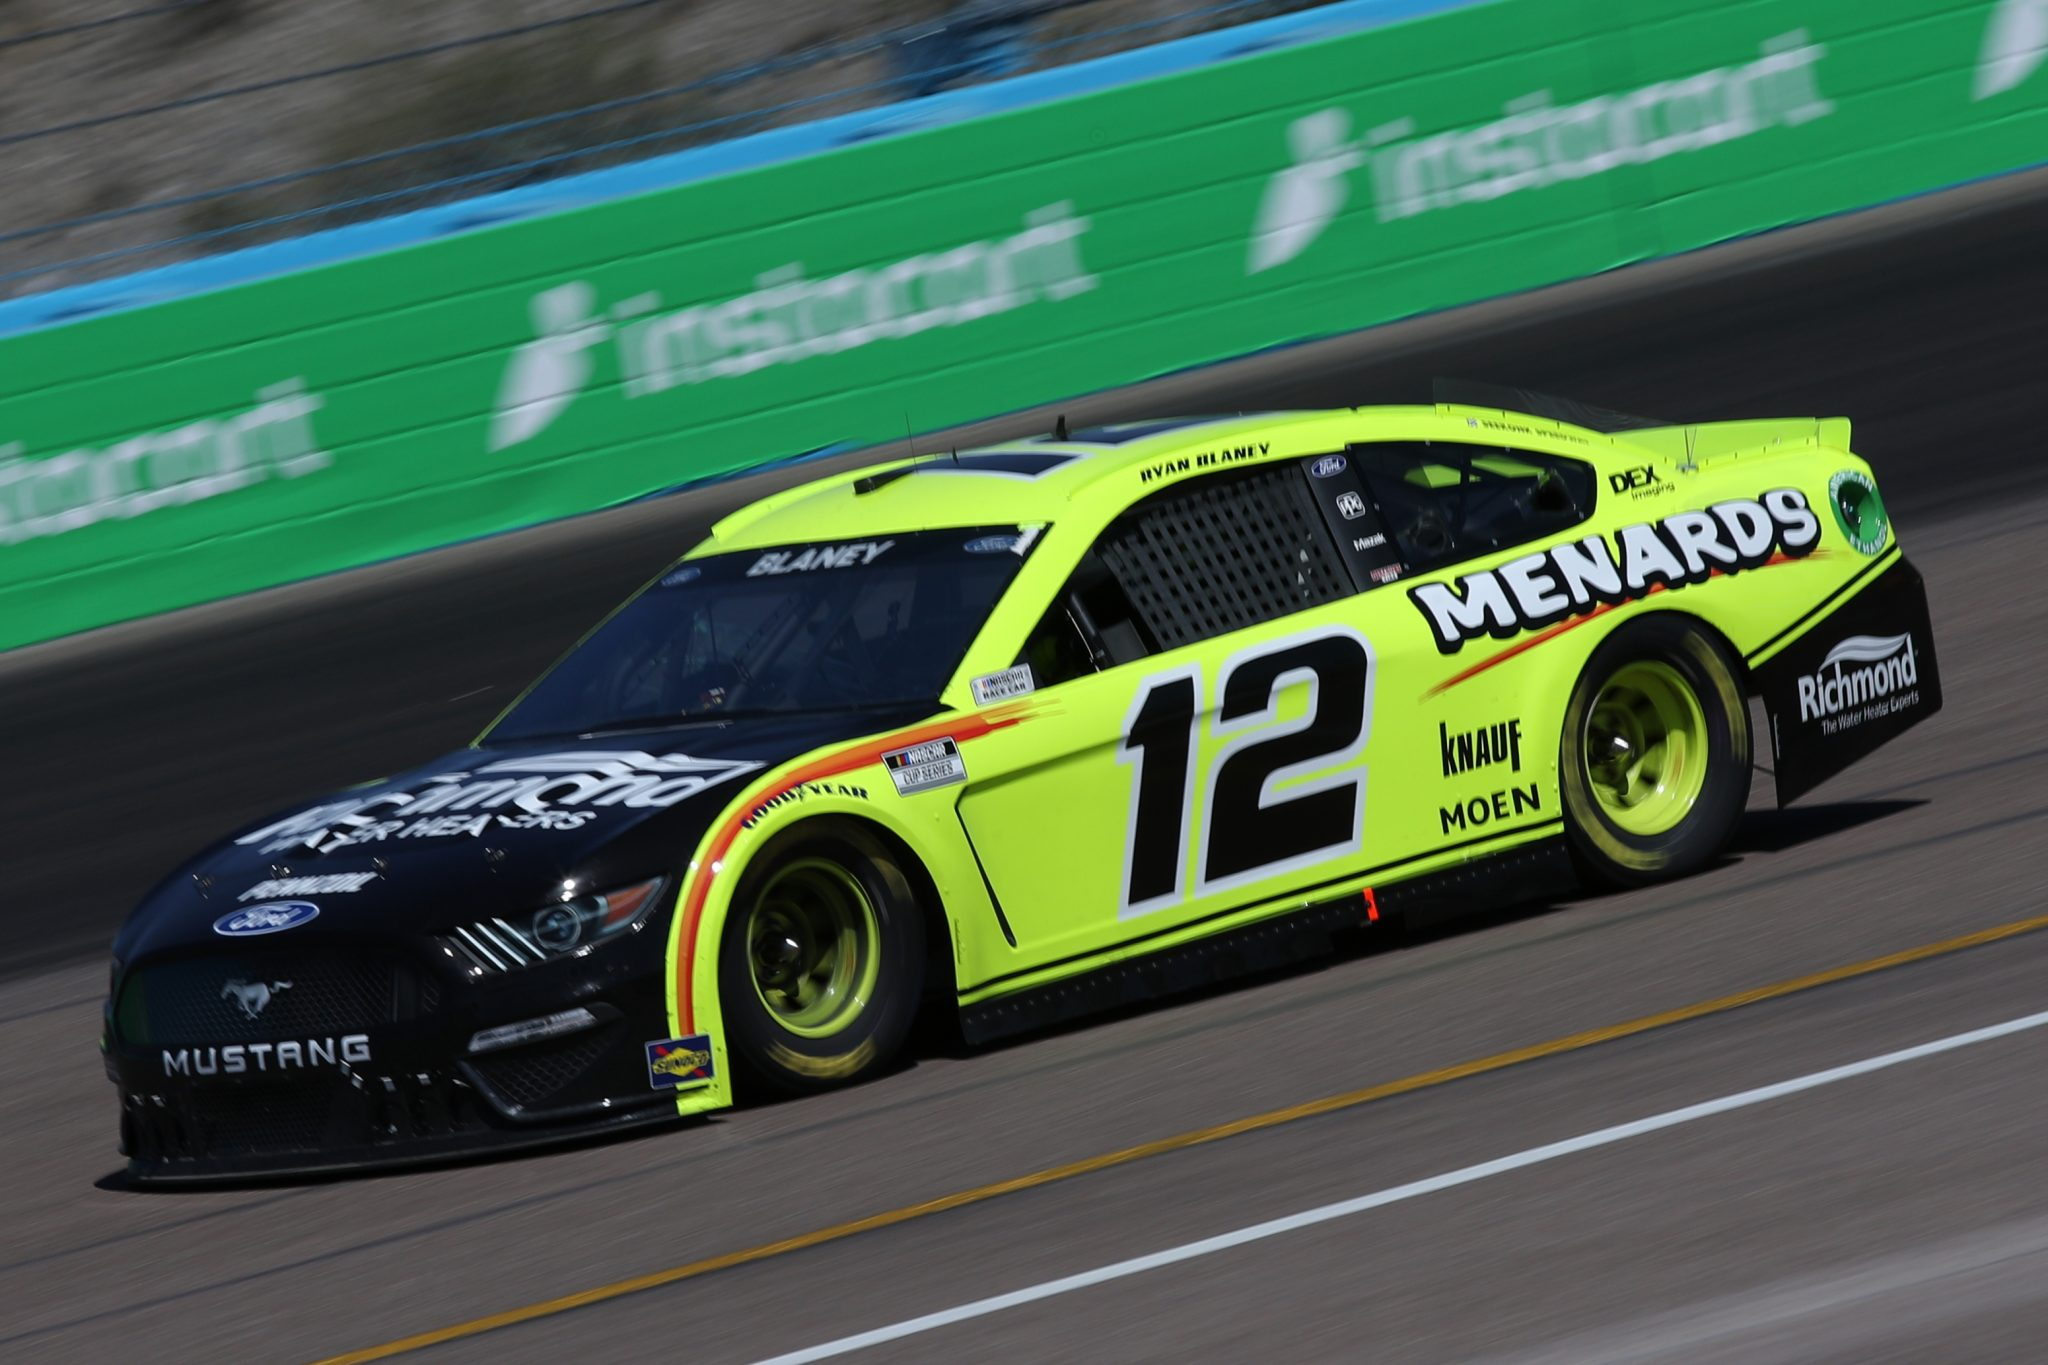 AVONDALE, ARIZONA - MARCH 14: Ryan Blaney, driver of the #12 Menards/Richmond Water Heaters Ford, drives during the NASCAR Cup Series Instacart 500 at Phoenix Raceway on March 14, 2021 in Avondale, Arizona. (Photo by Sean Gardner/Getty Images) | Getty Images